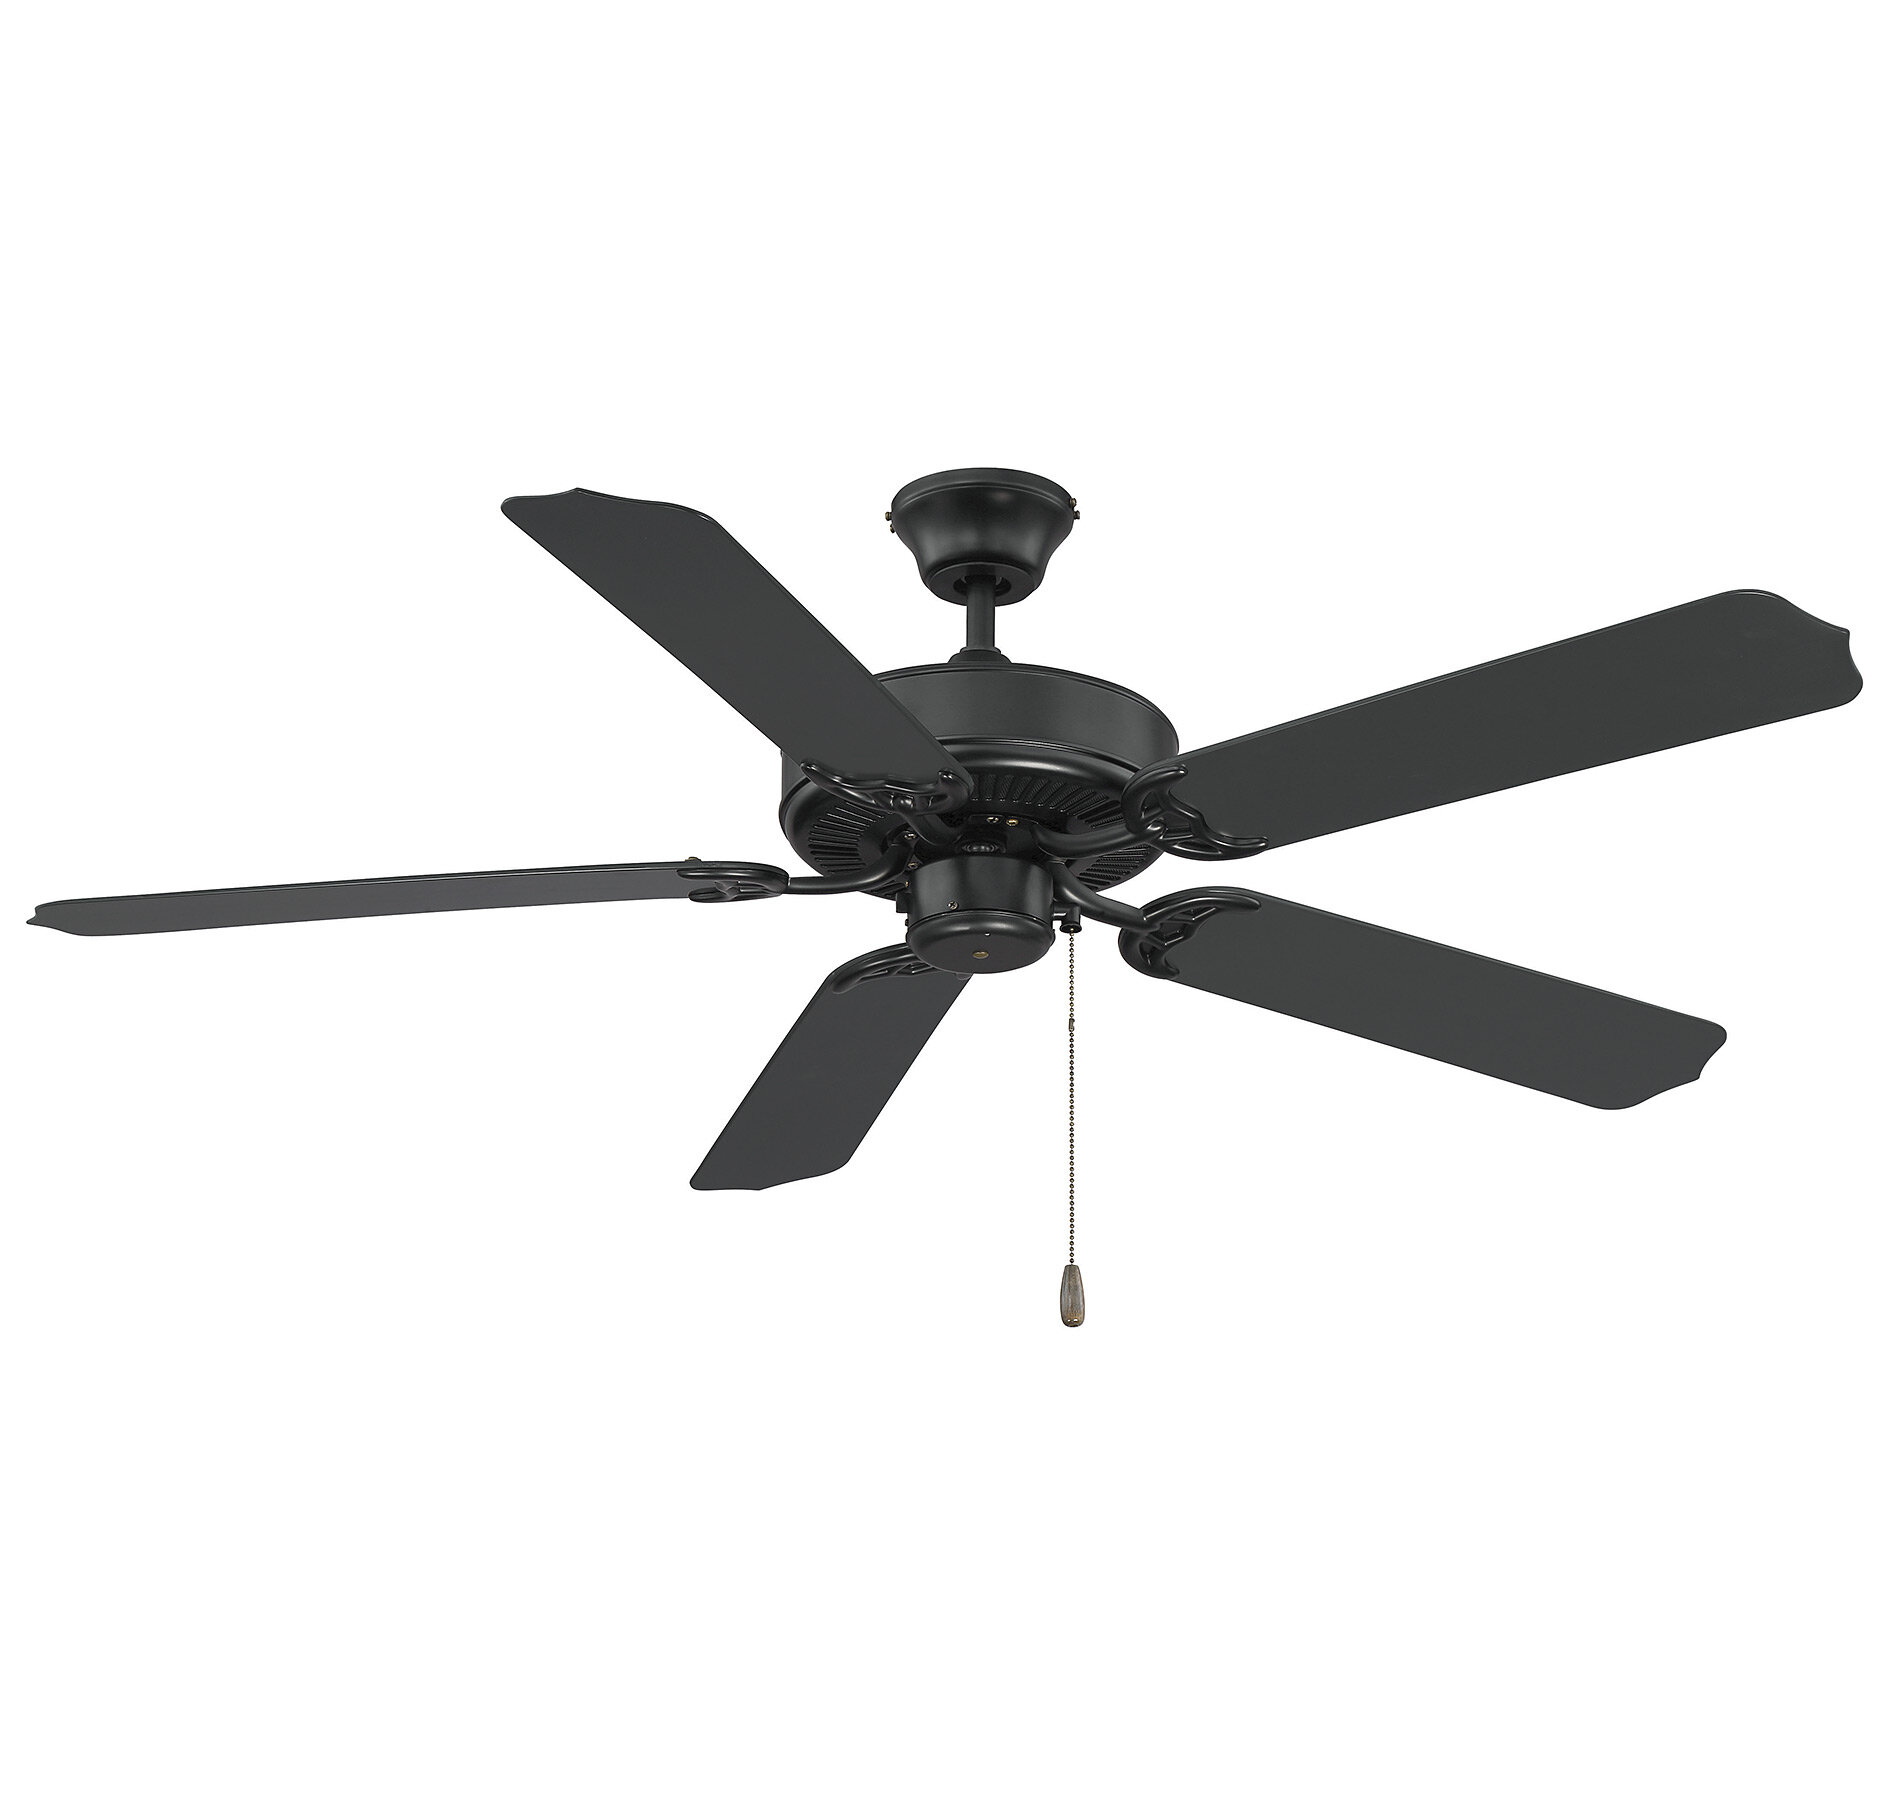 Ceiling Fans Youll Love Hunter Customer Service Save